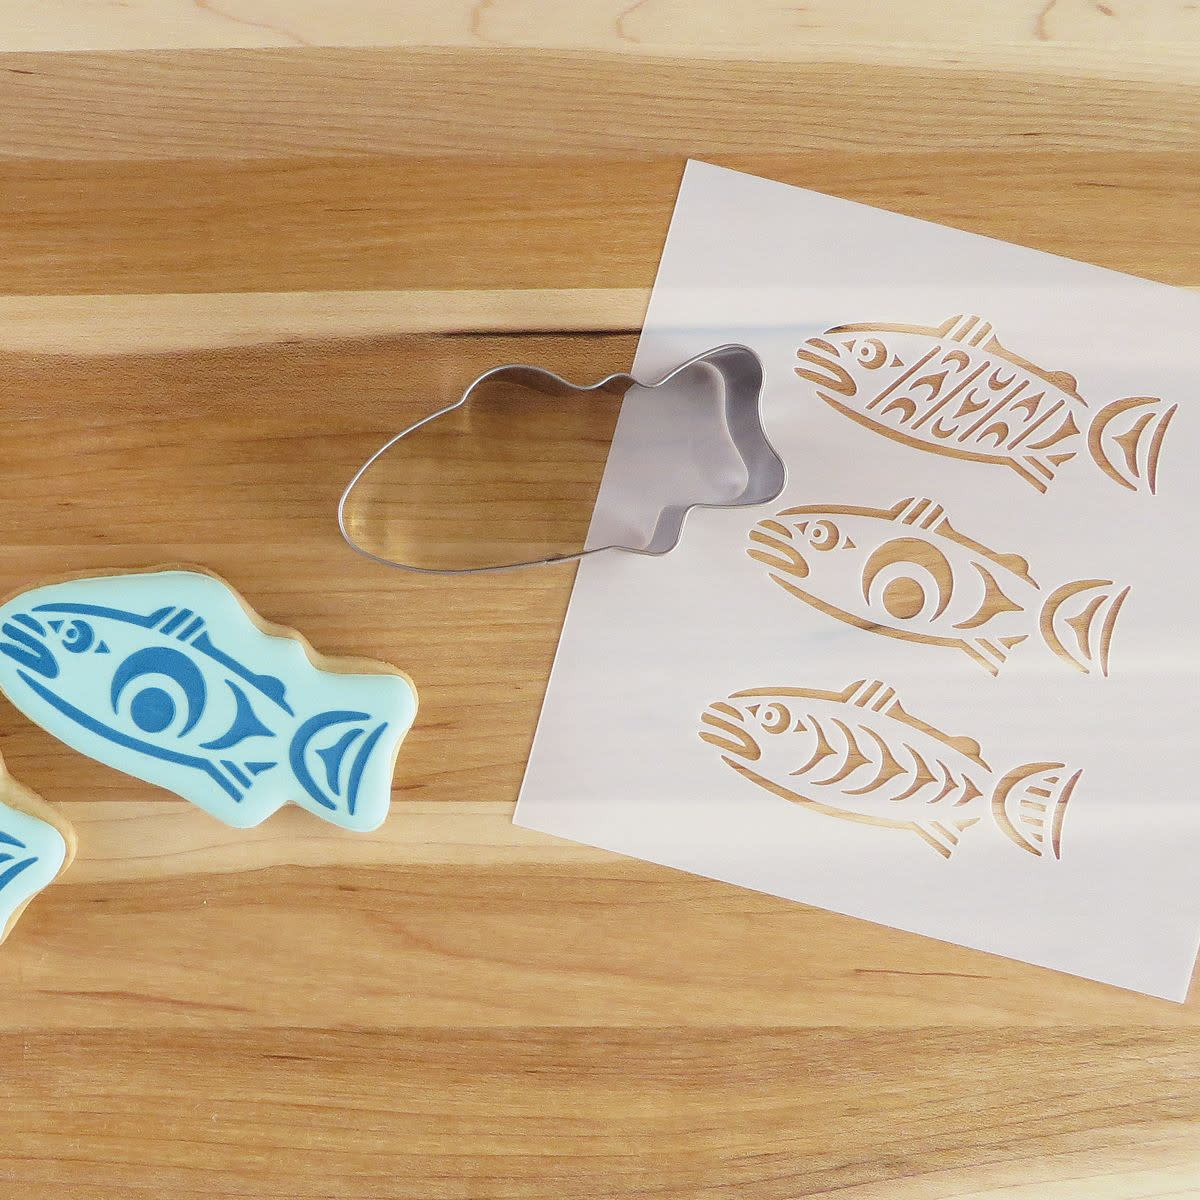 Cookie Cutter & Stencil Set Salmon in the Wild by Simone Diamond-1